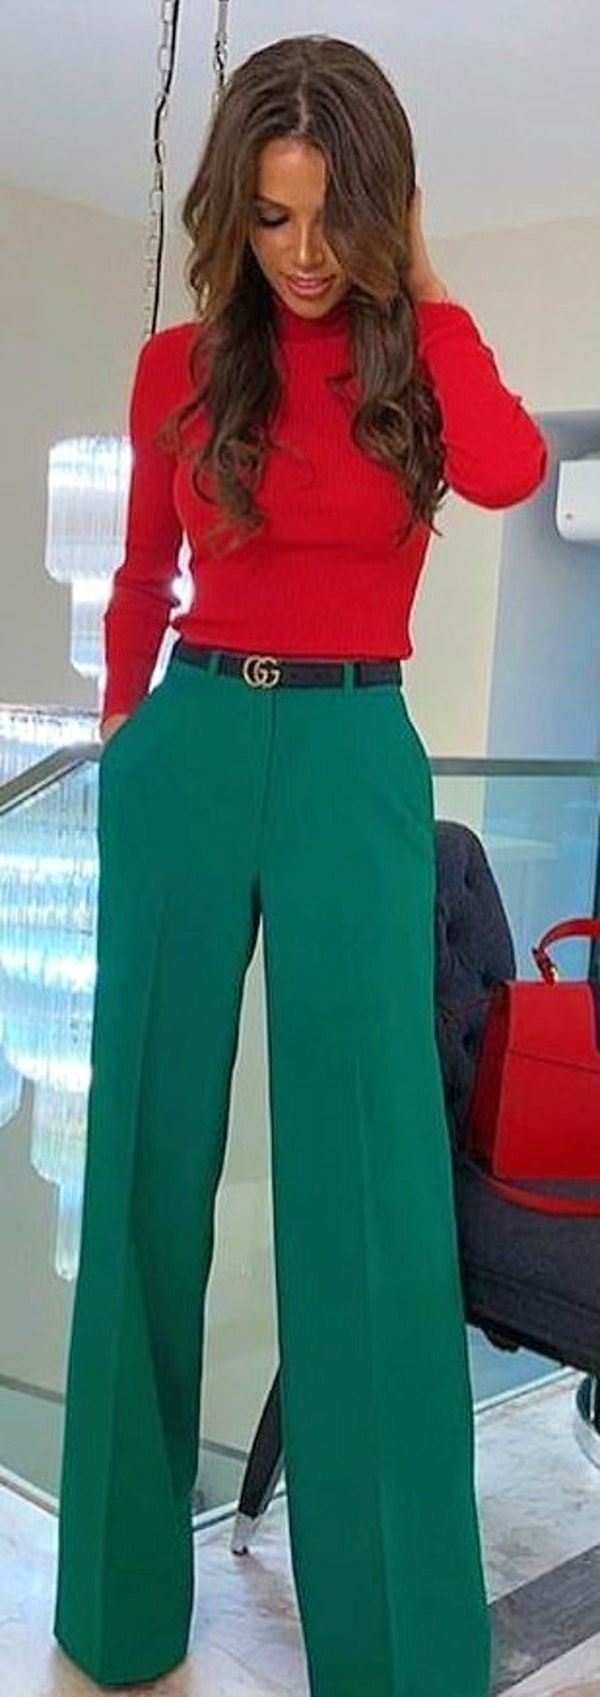 #spring #outfits woman wearing red long-sleeved shirt and green pants outfit. Pic by @best_street_styles